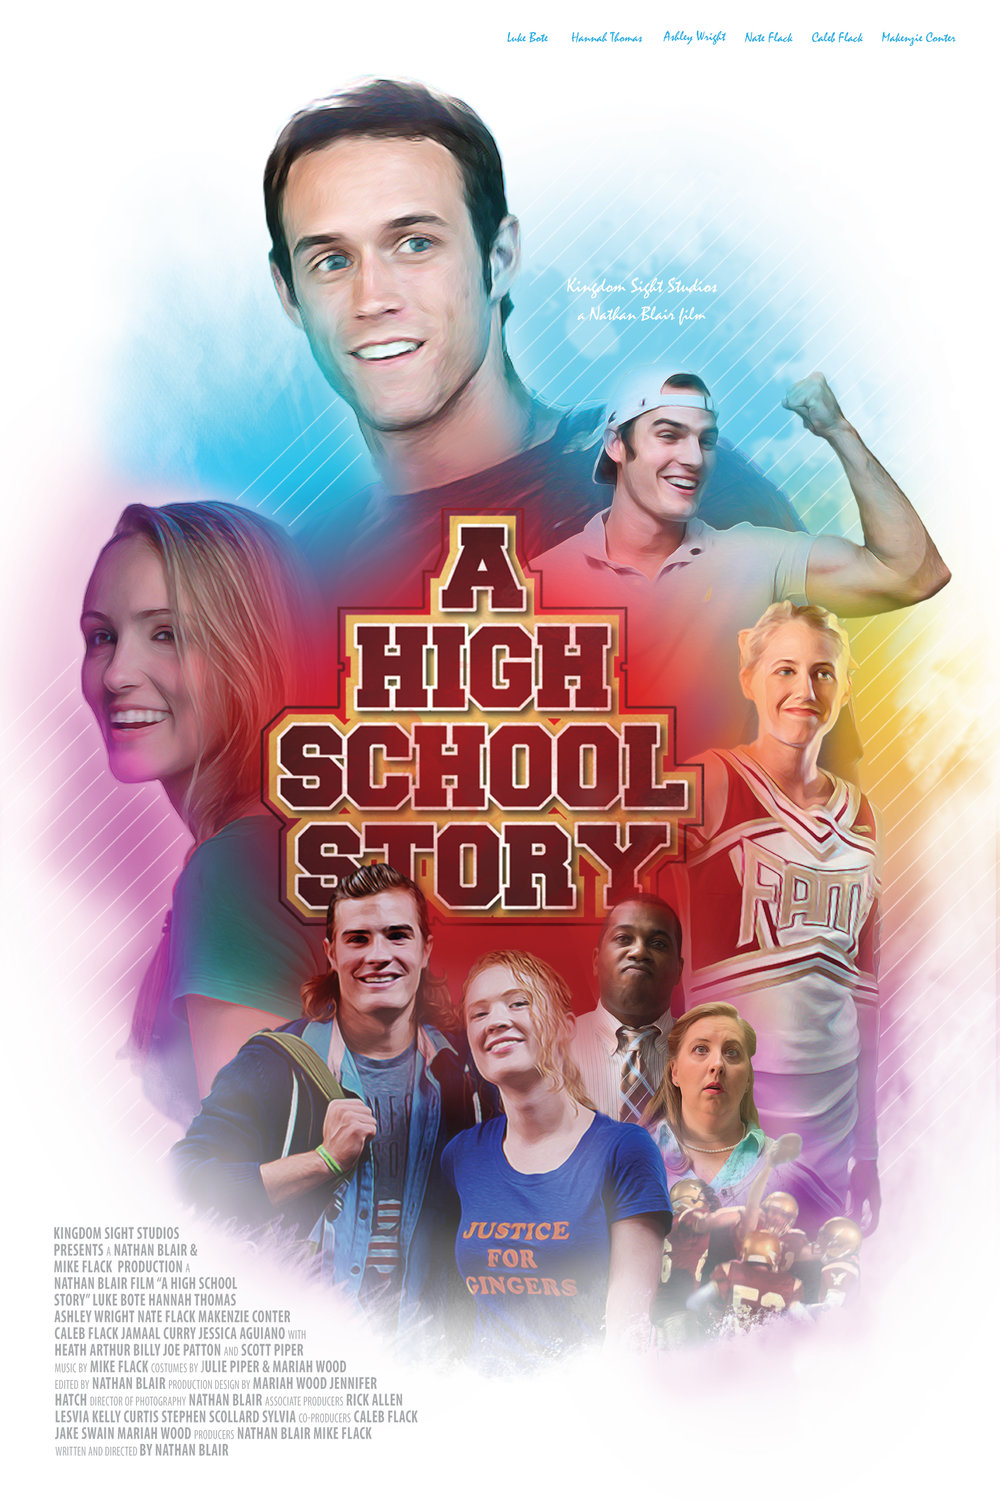 A High school story movie poster